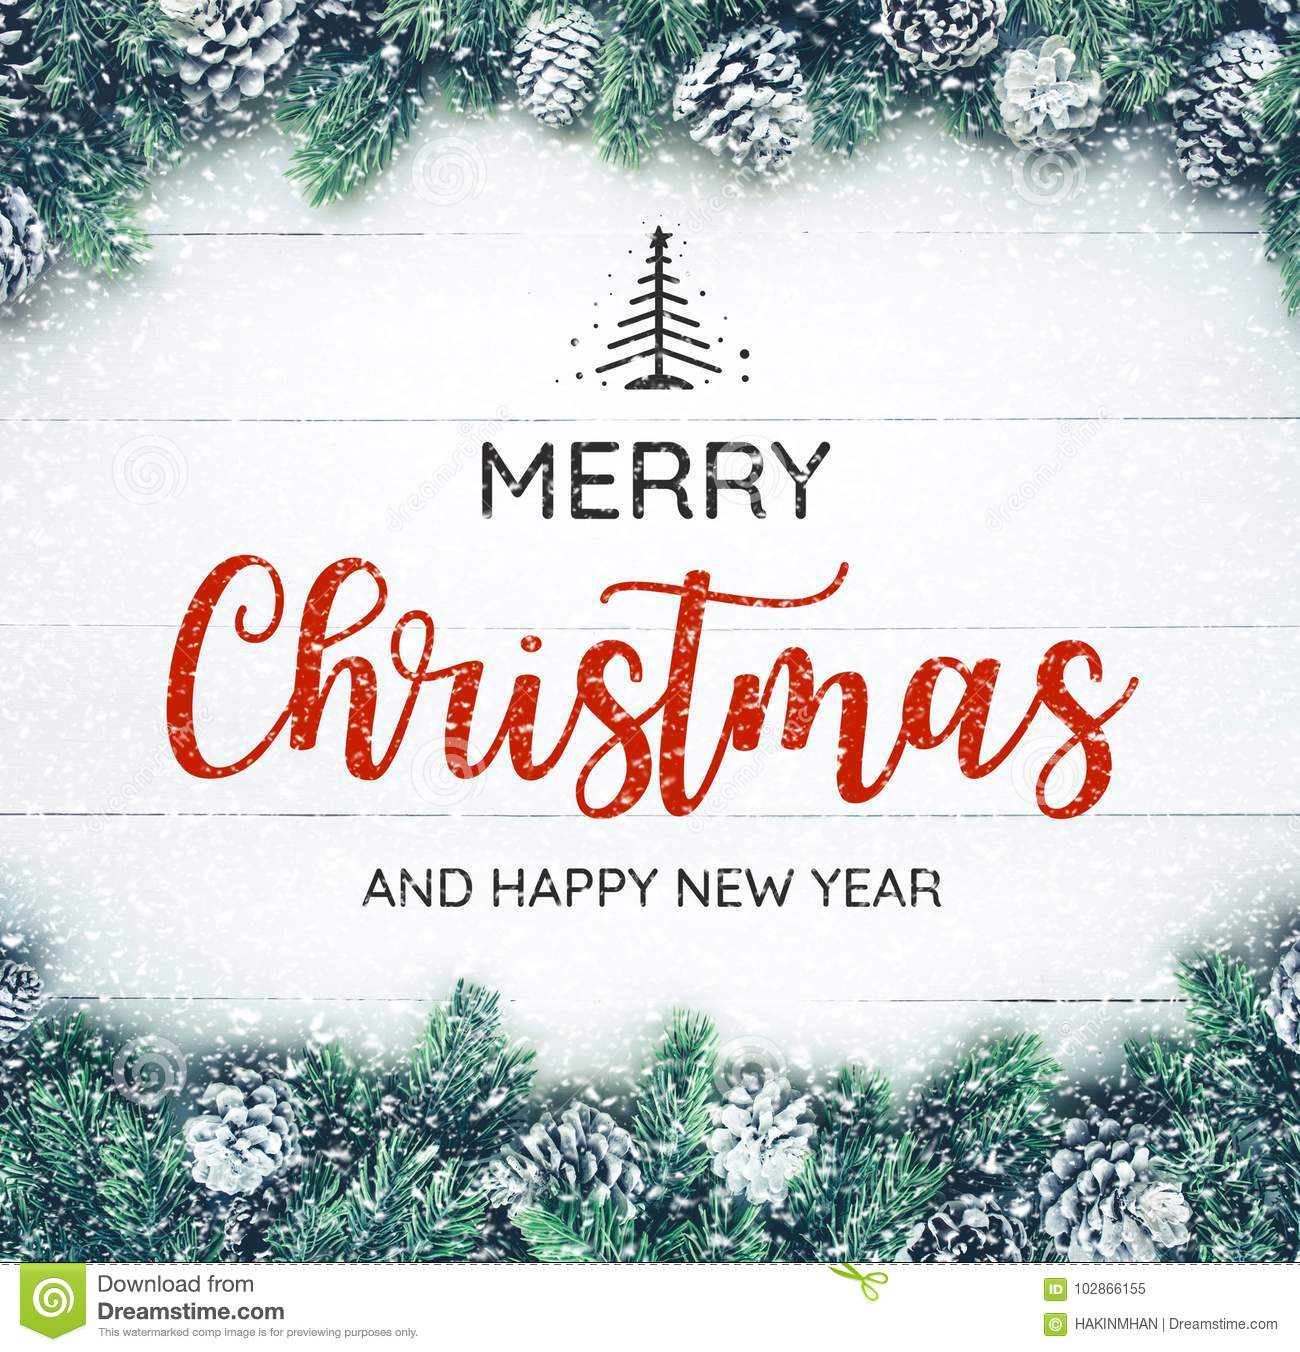 MERRY CHRISTMAS AND HAPPY NEW YEAR typography,text with christmas ornament